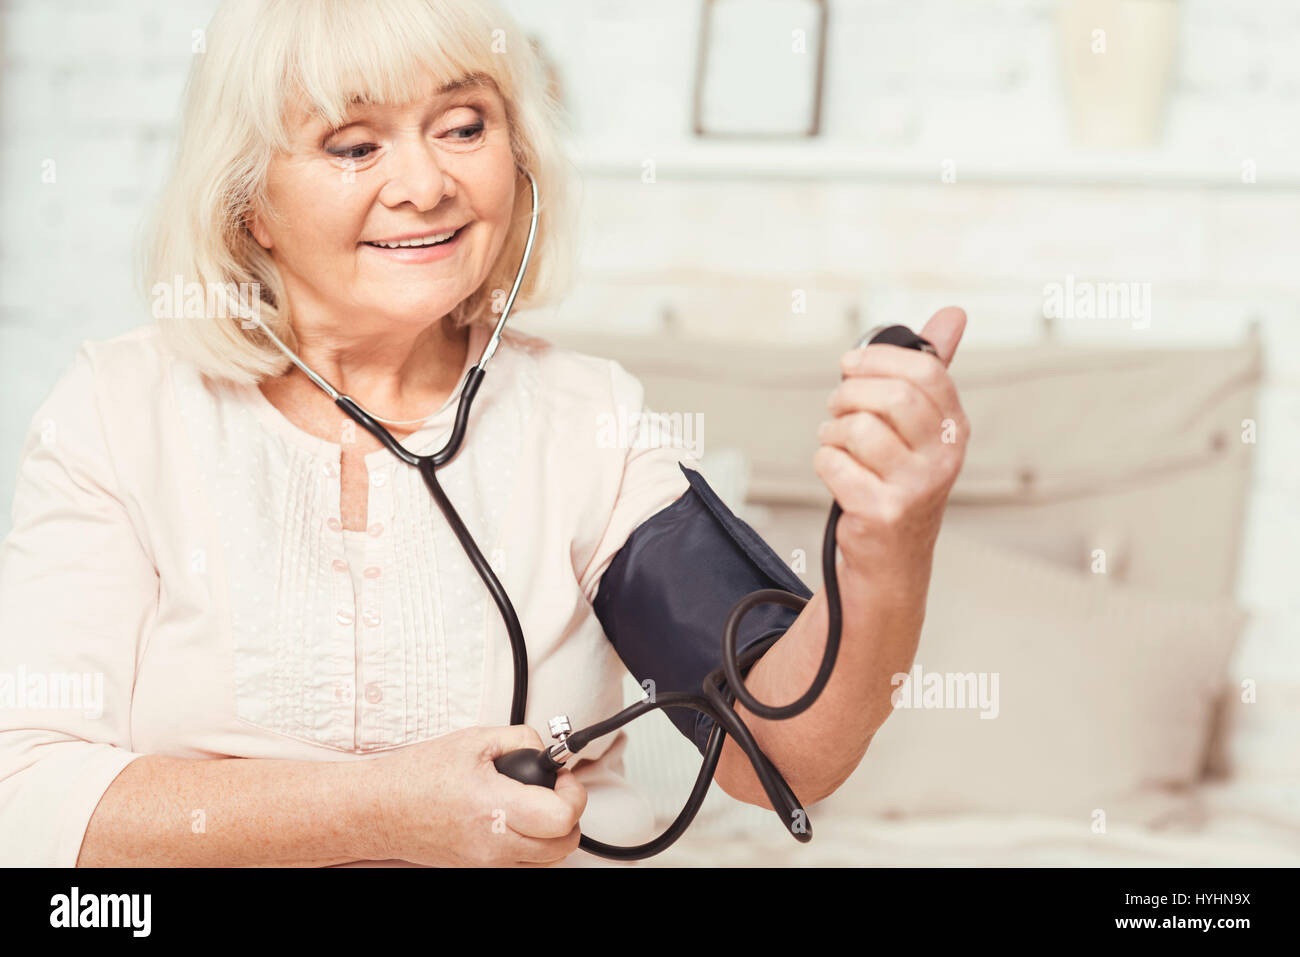 Cheerful aged woman checking blood pressure at home - Stock Image